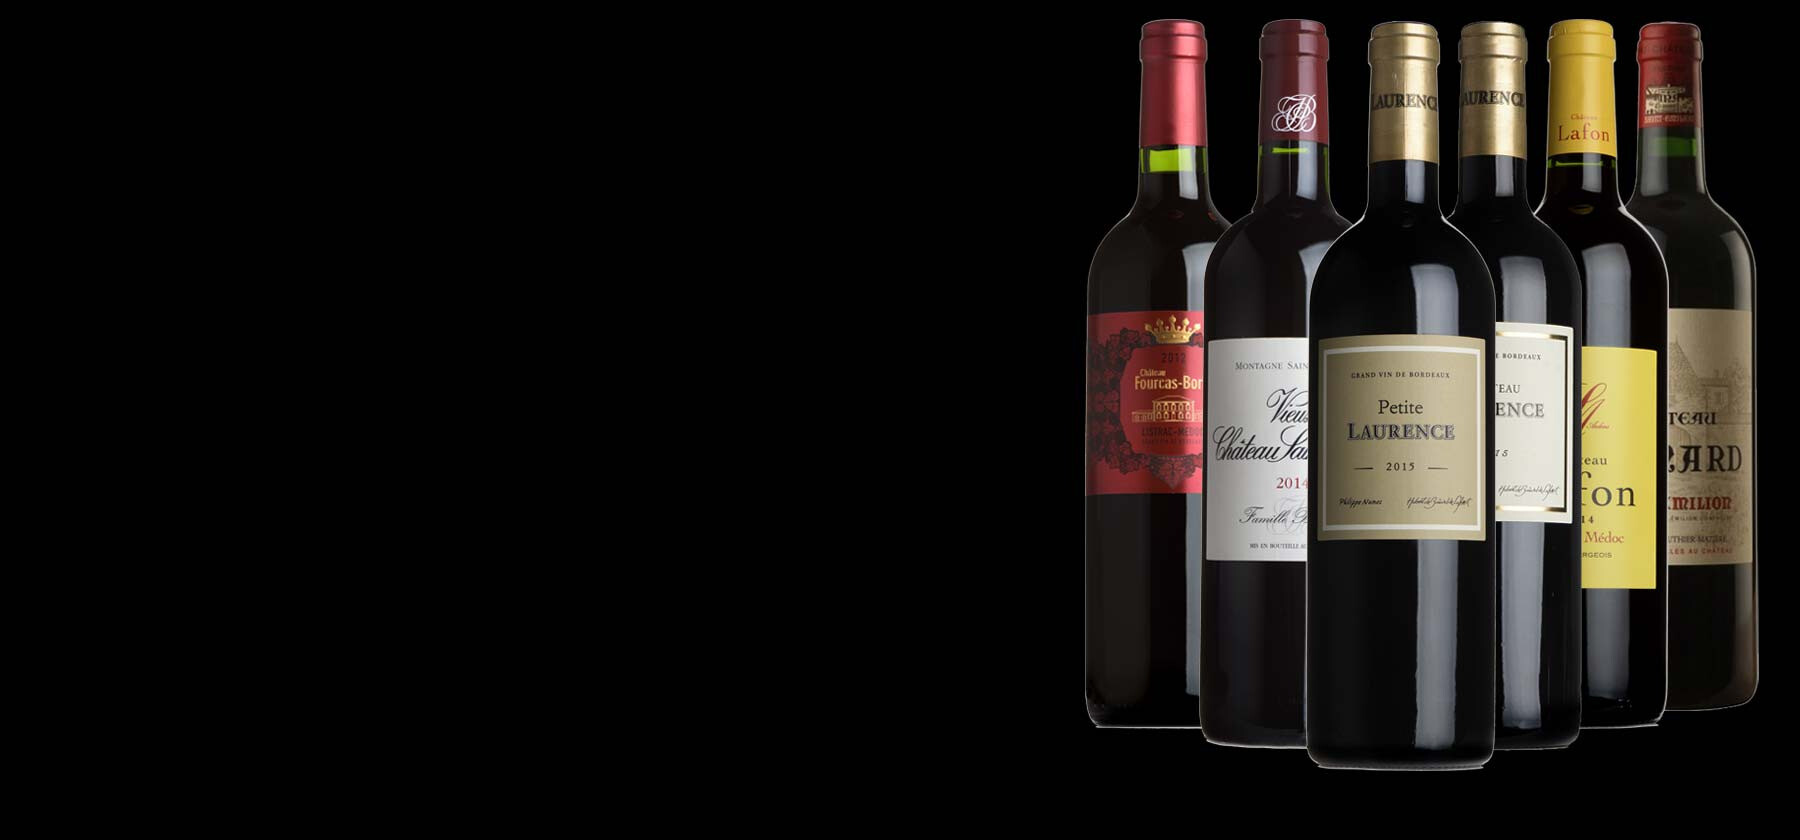 20% OFF BORDEAUX WINES Your early-bird festive offer...